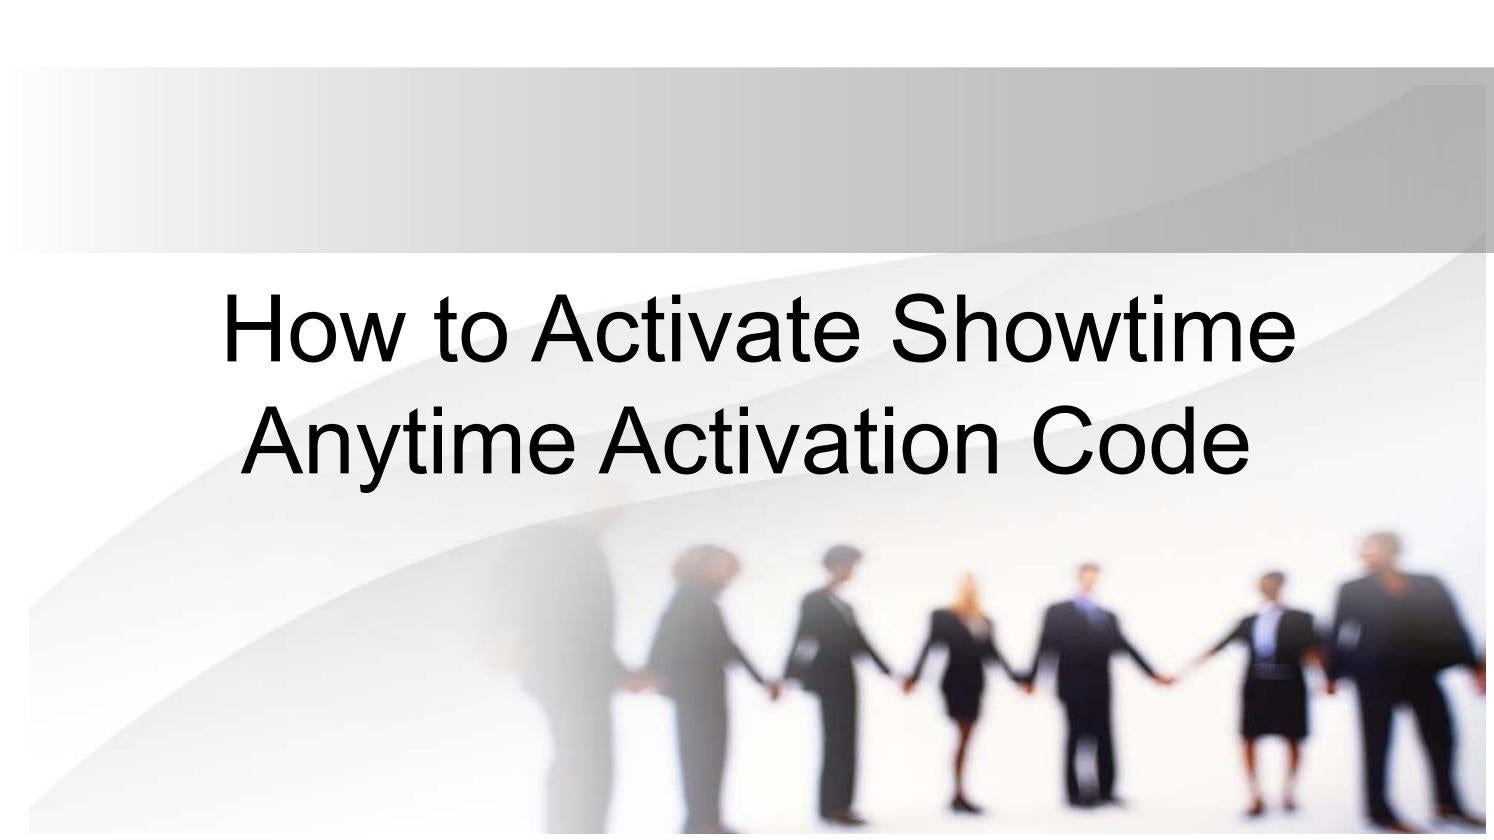 How To Activate Showtime Anytime Activation Code By Michael White Issuu